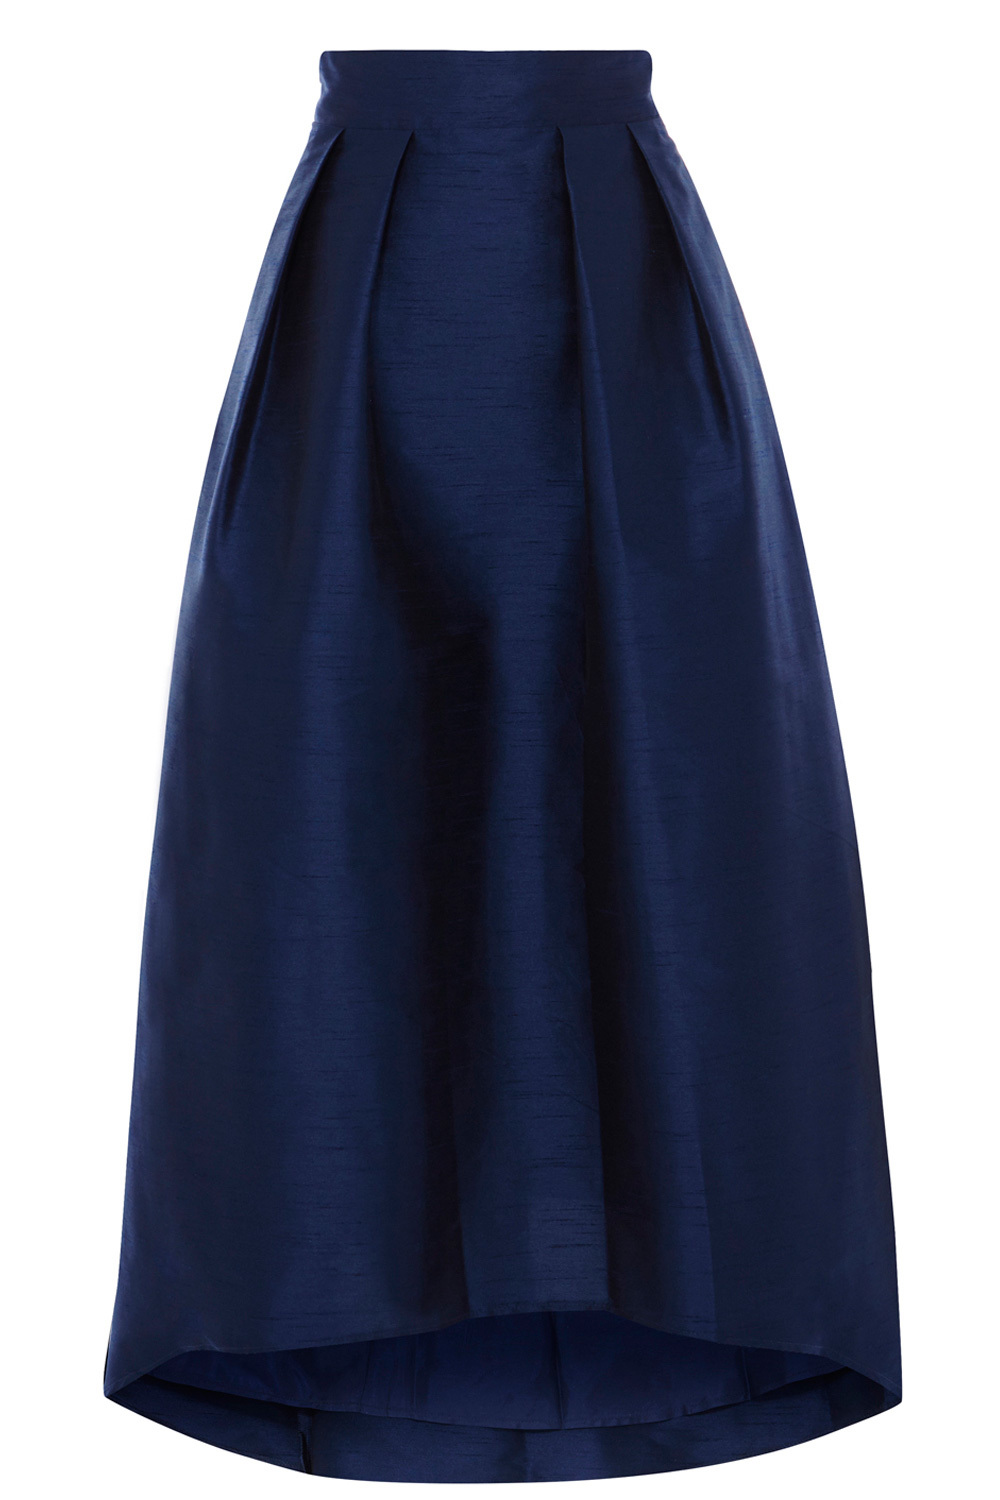 Ira Irridessa Hi Low Skirt - length: calf length; pattern: plain; style: full/prom skirt; fit: loose/voluminous; waist: mid/regular rise; predominant colour: navy; occasions: evening; fibres: polyester/polyamide - 100%; pattern type: fabric; texture group: other - light to midweight; season: s/s 2016; wardrobe: event